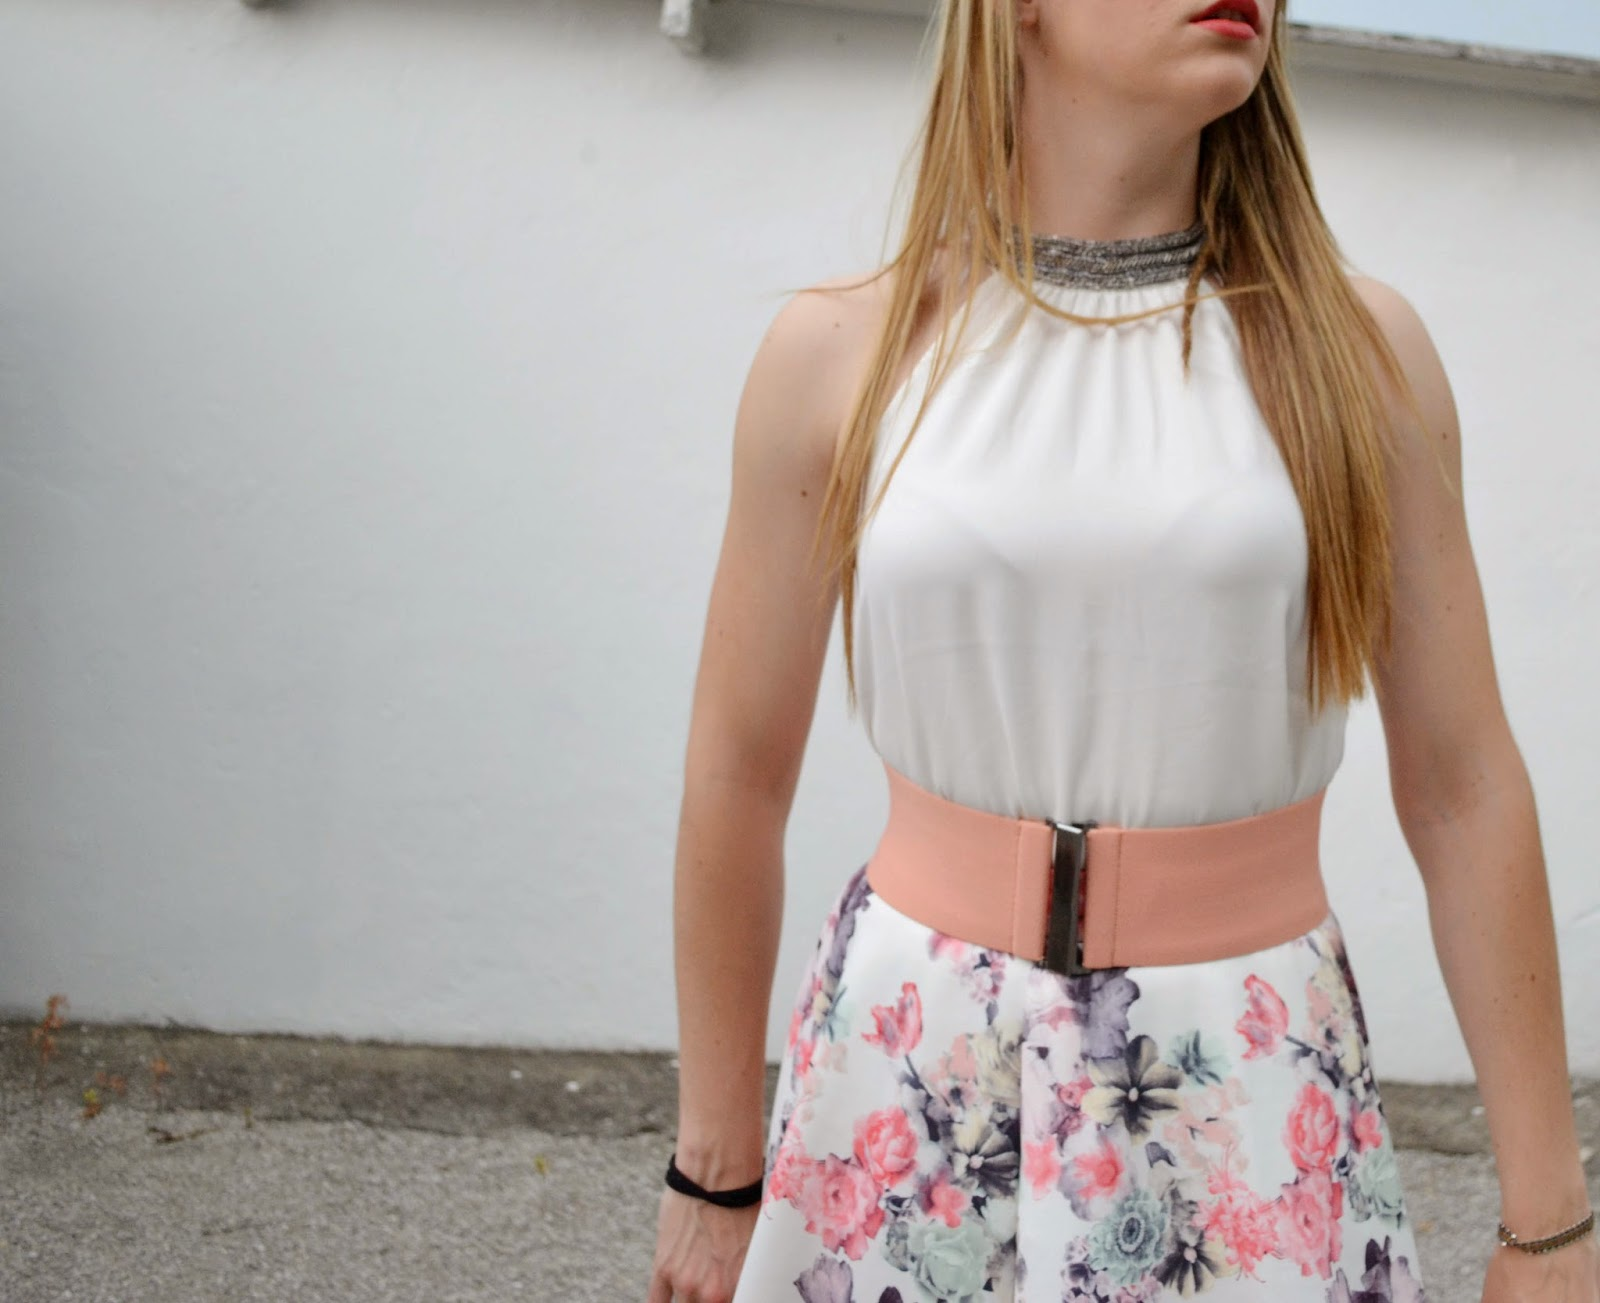 Floral floaty skirt, elegant white blouse